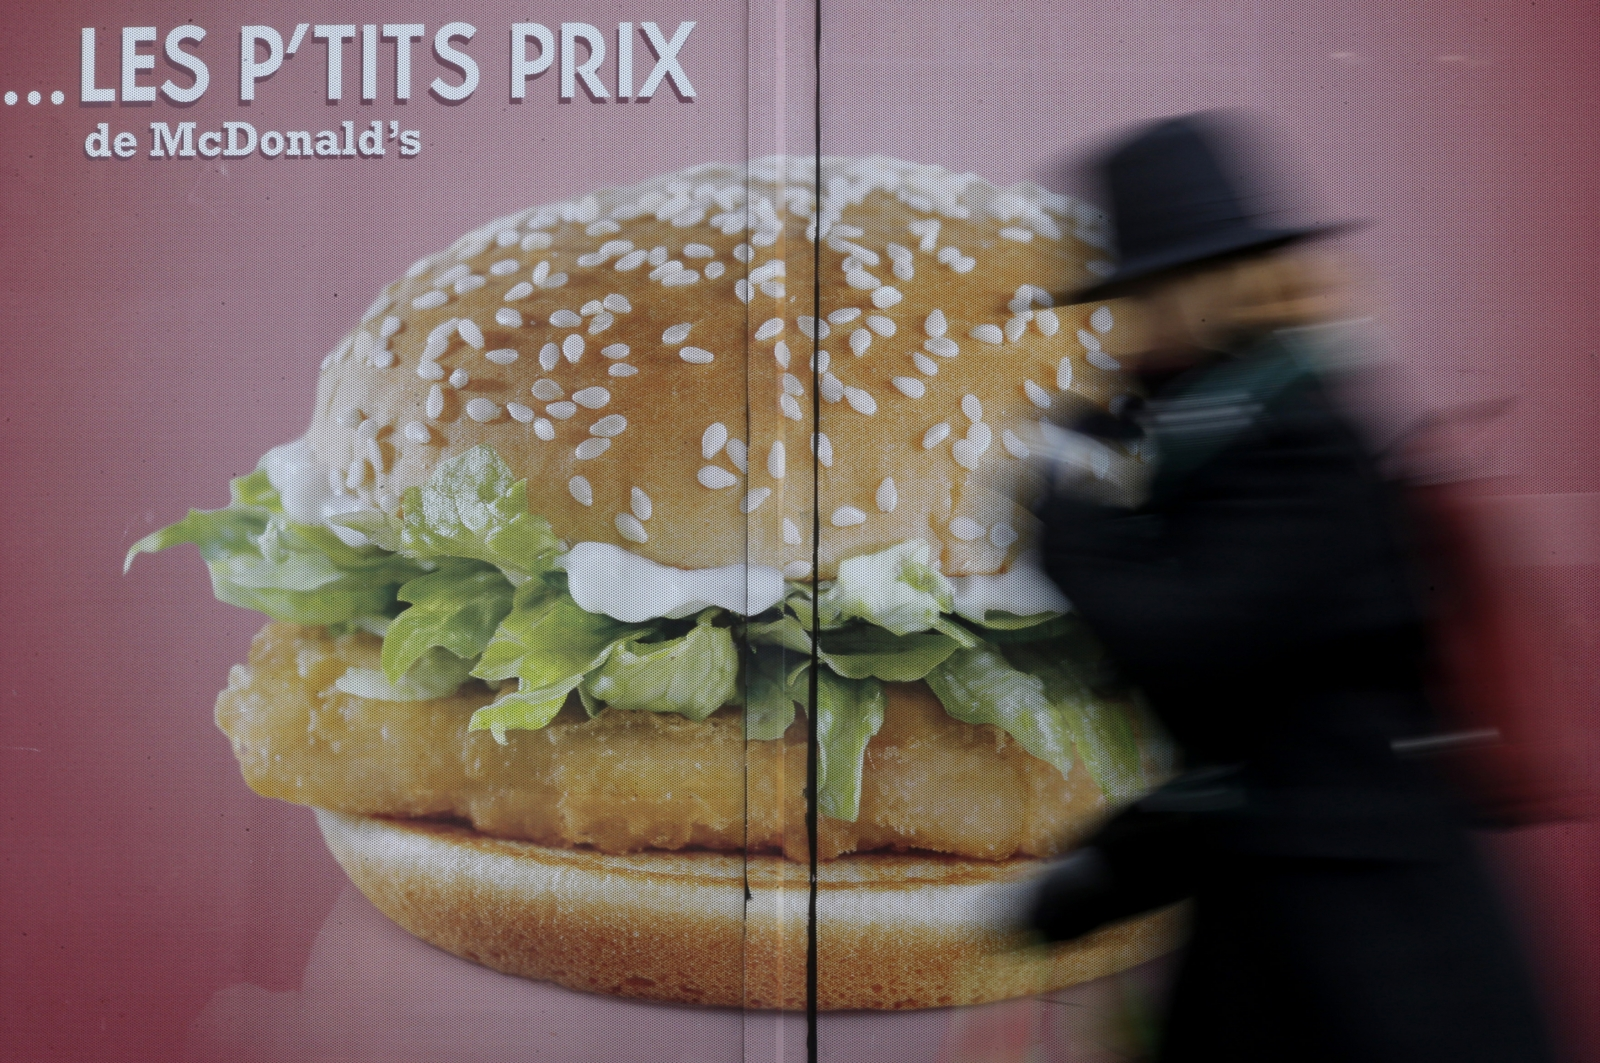 fast-food restaurant in Paris